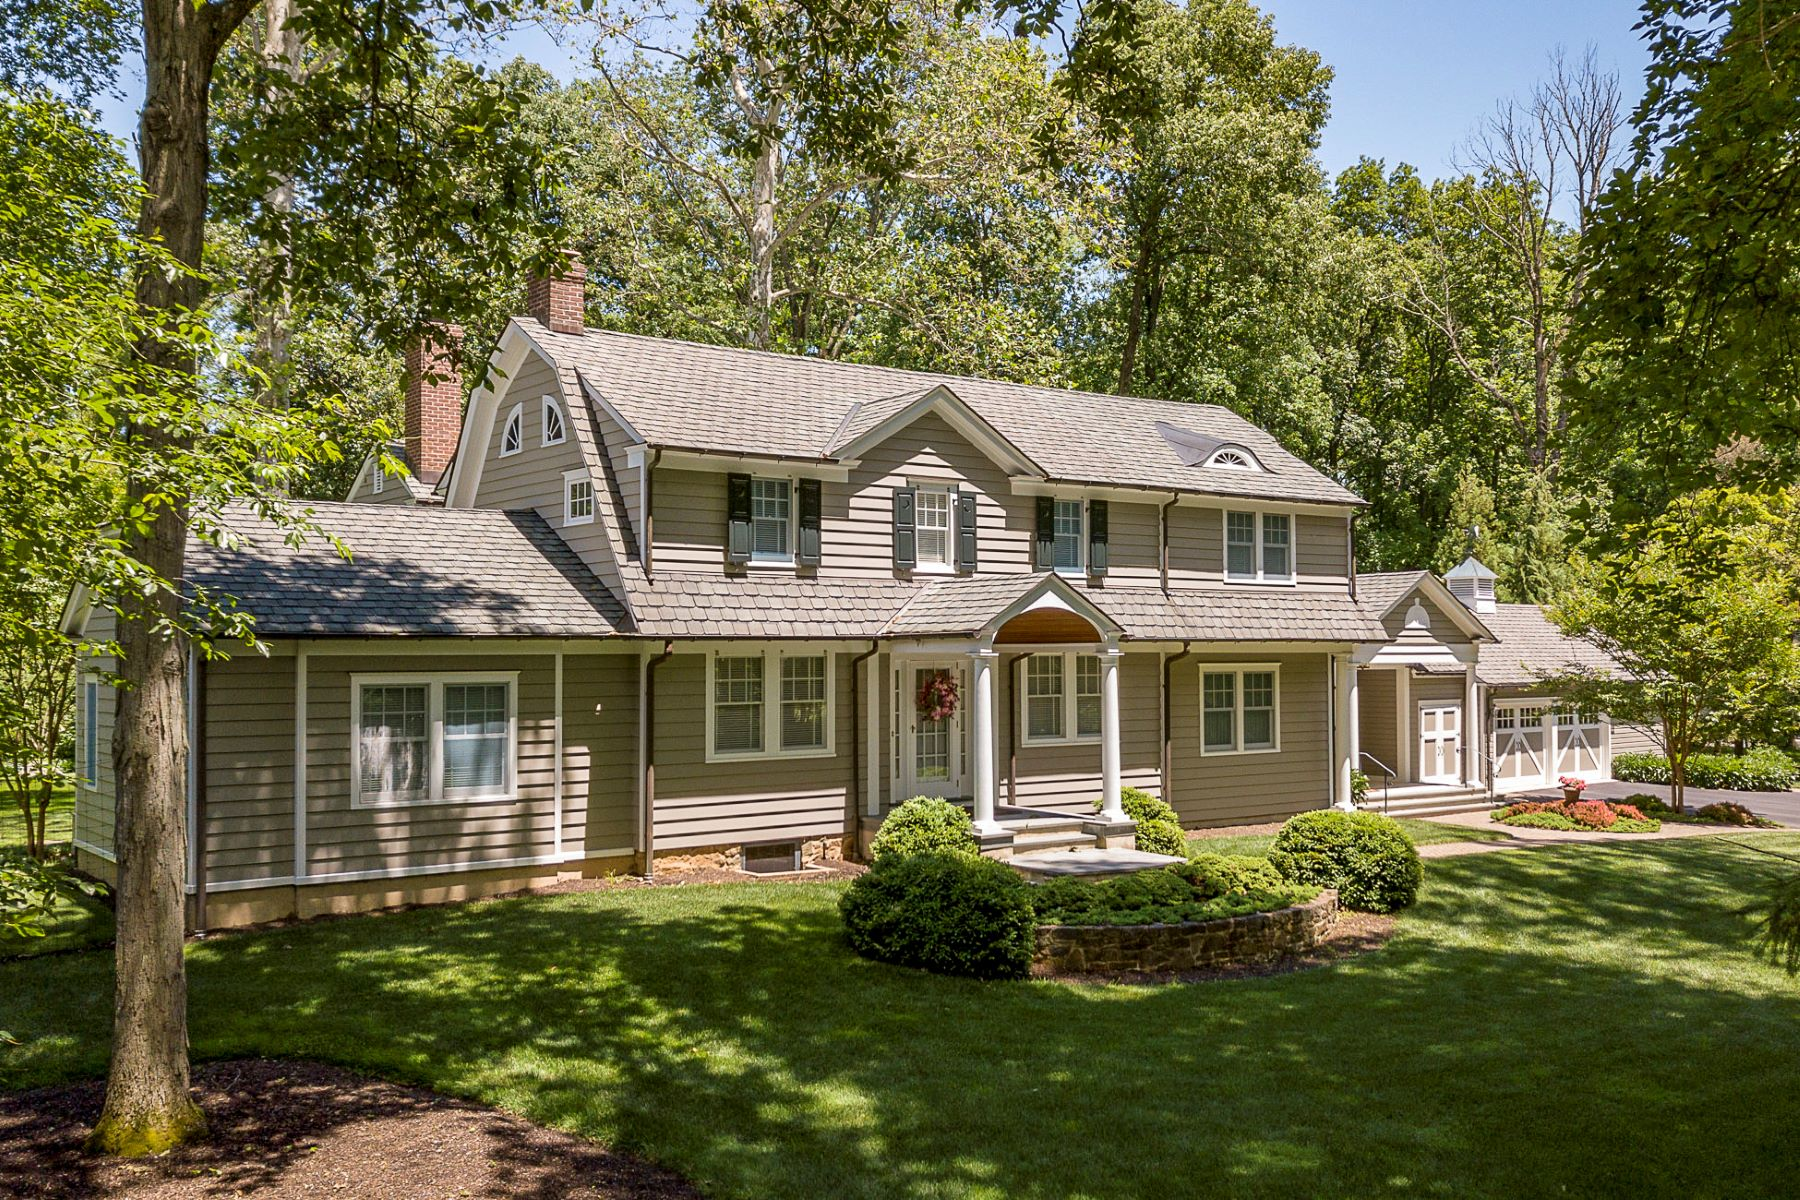 Single Family Homes for Sale at Transformed By A Talented Team of Princetonians 56 Balcort Drive, Princeton, New Jersey 08540 United States